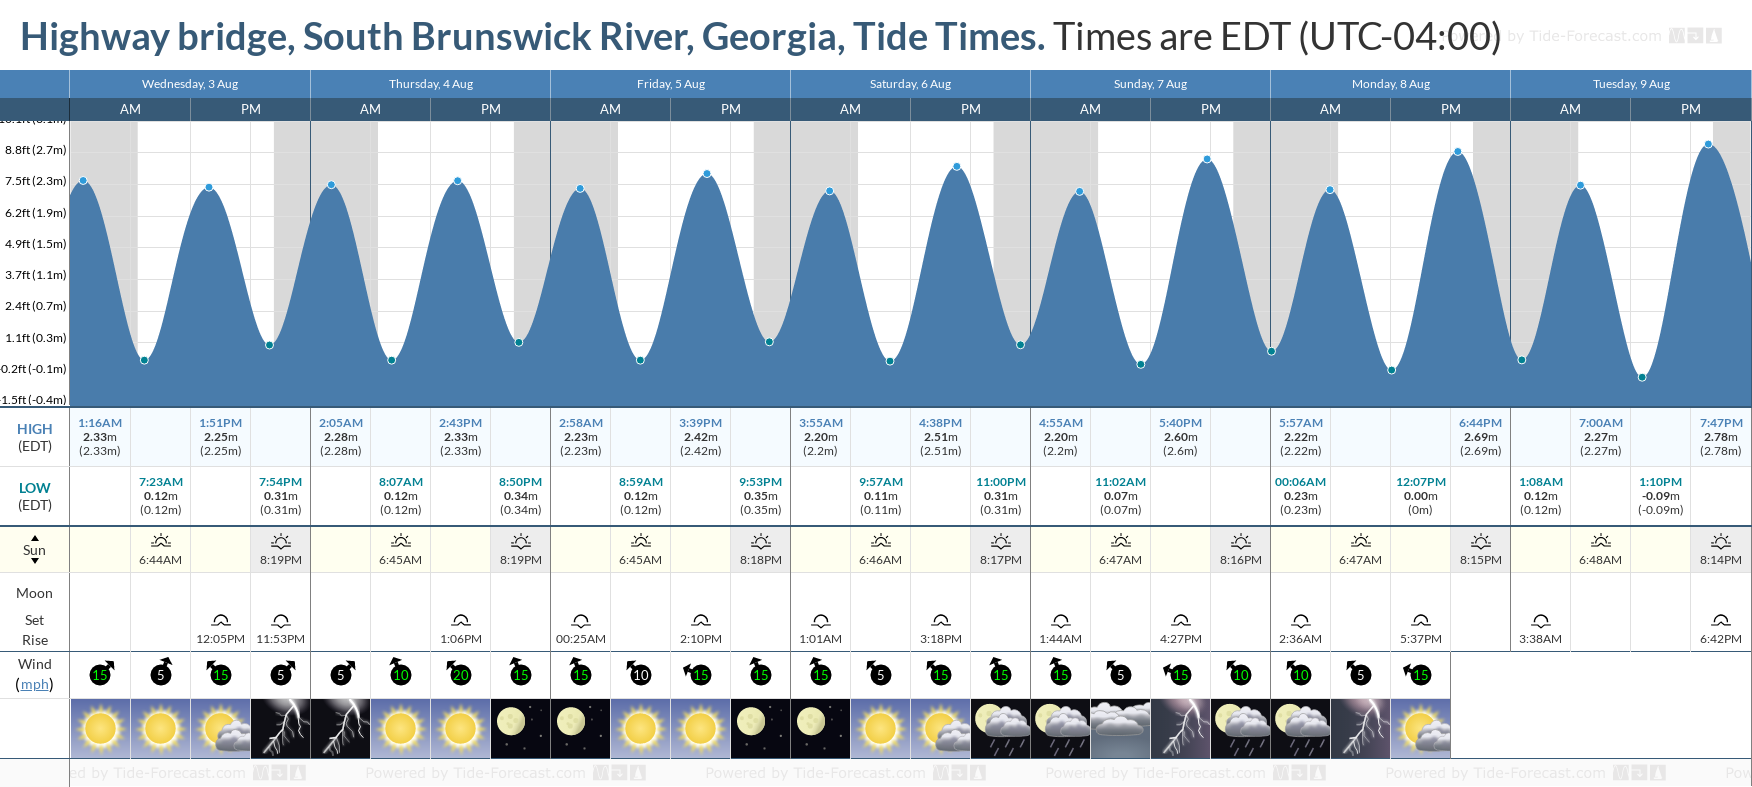 Highway bridge, South Brunswick River, Georgia Tide Chart including high and low tide tide times for the next 7 days